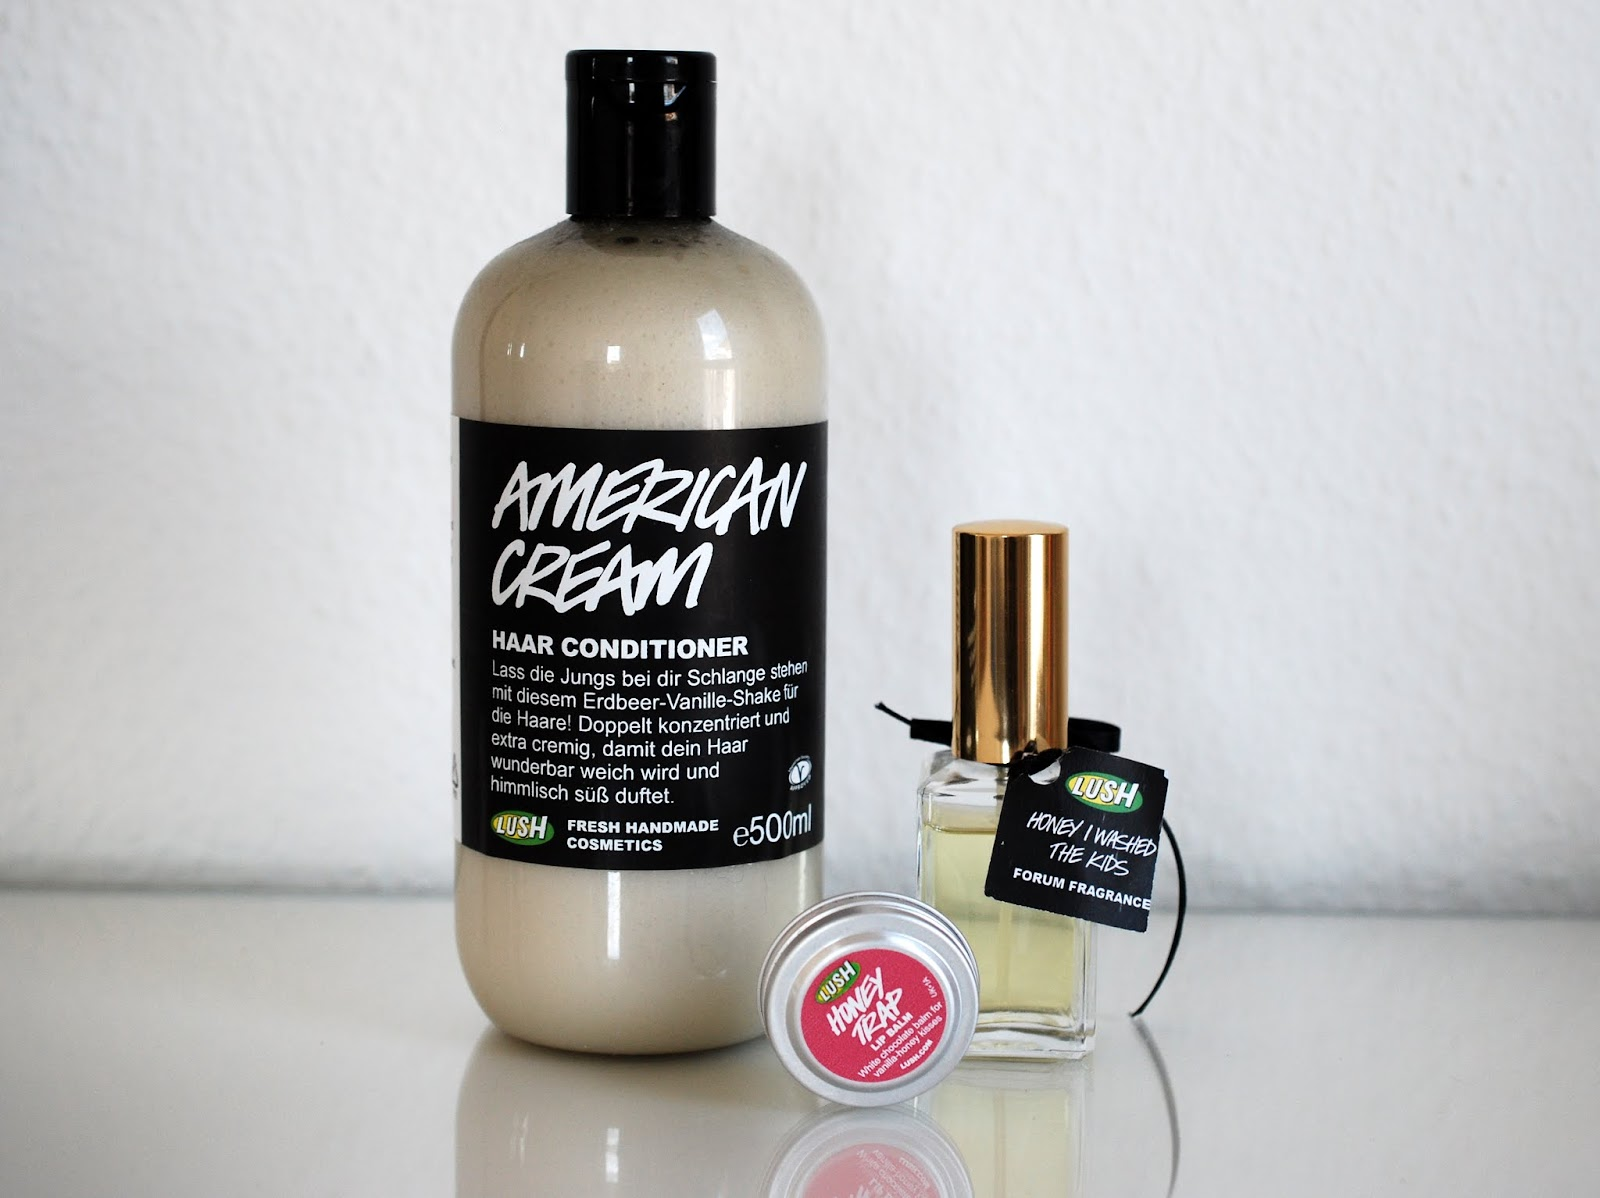 Blogparade Top 3 Lush Produkte